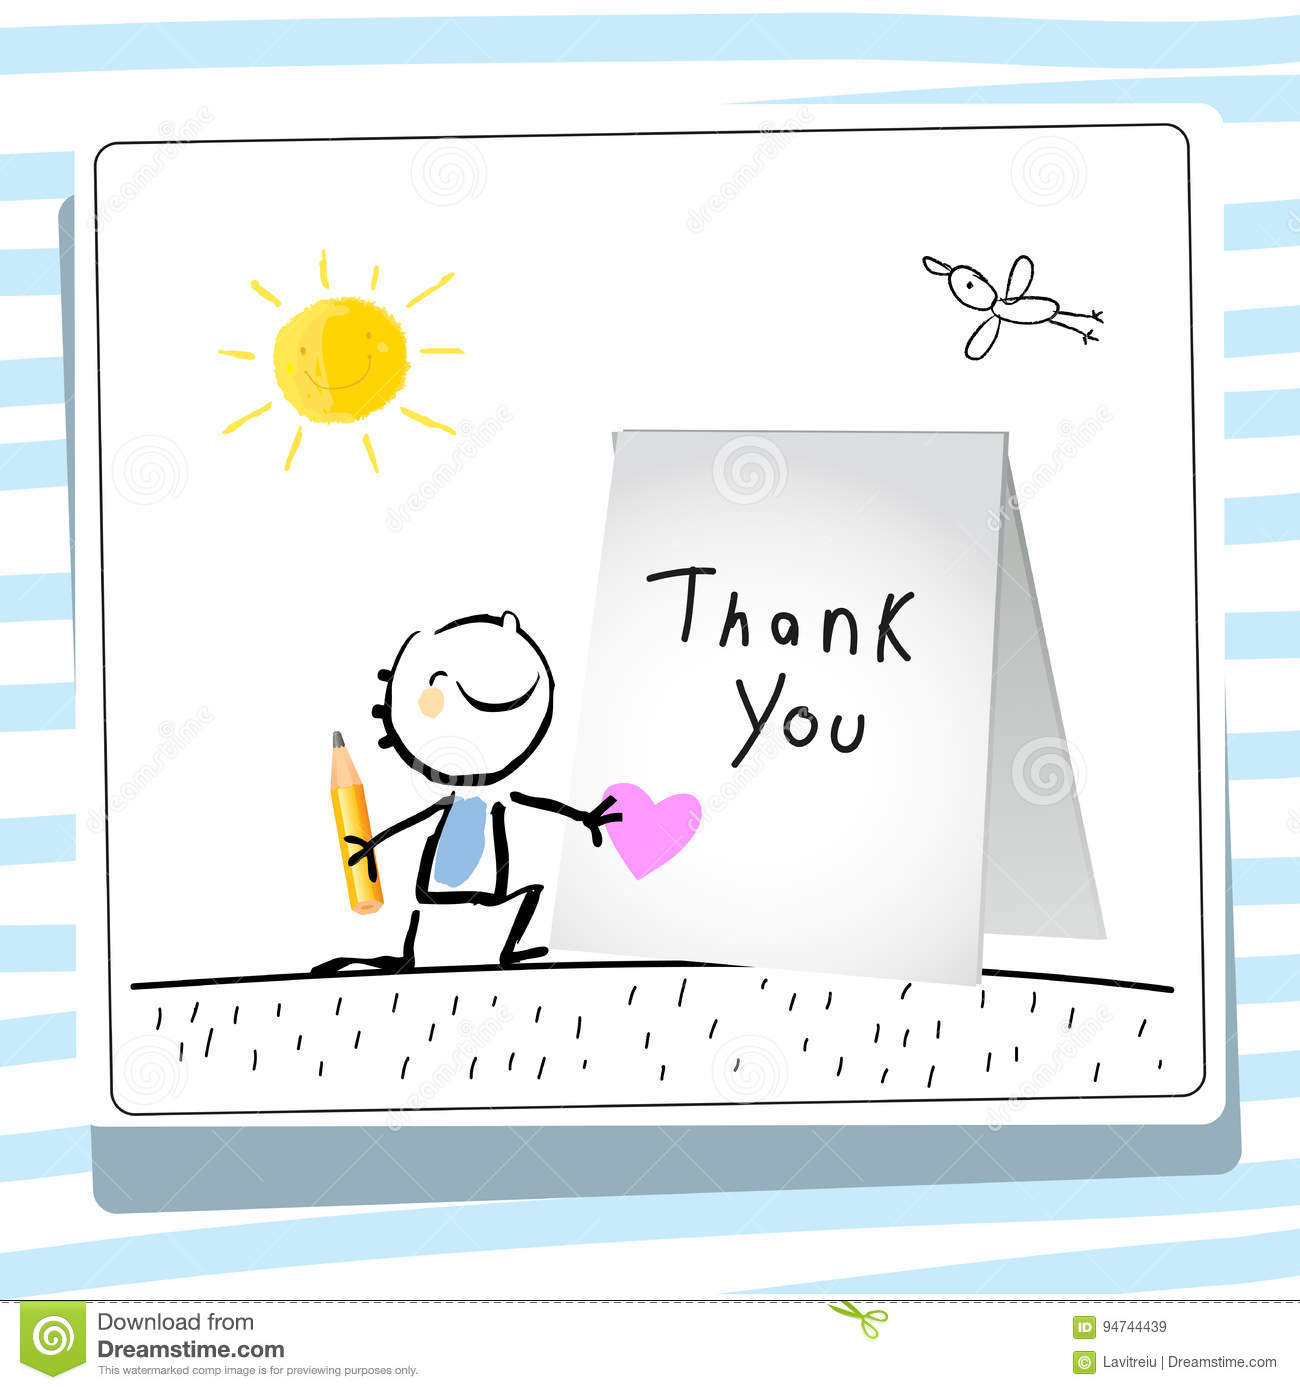 Kids gratefulness thank you card